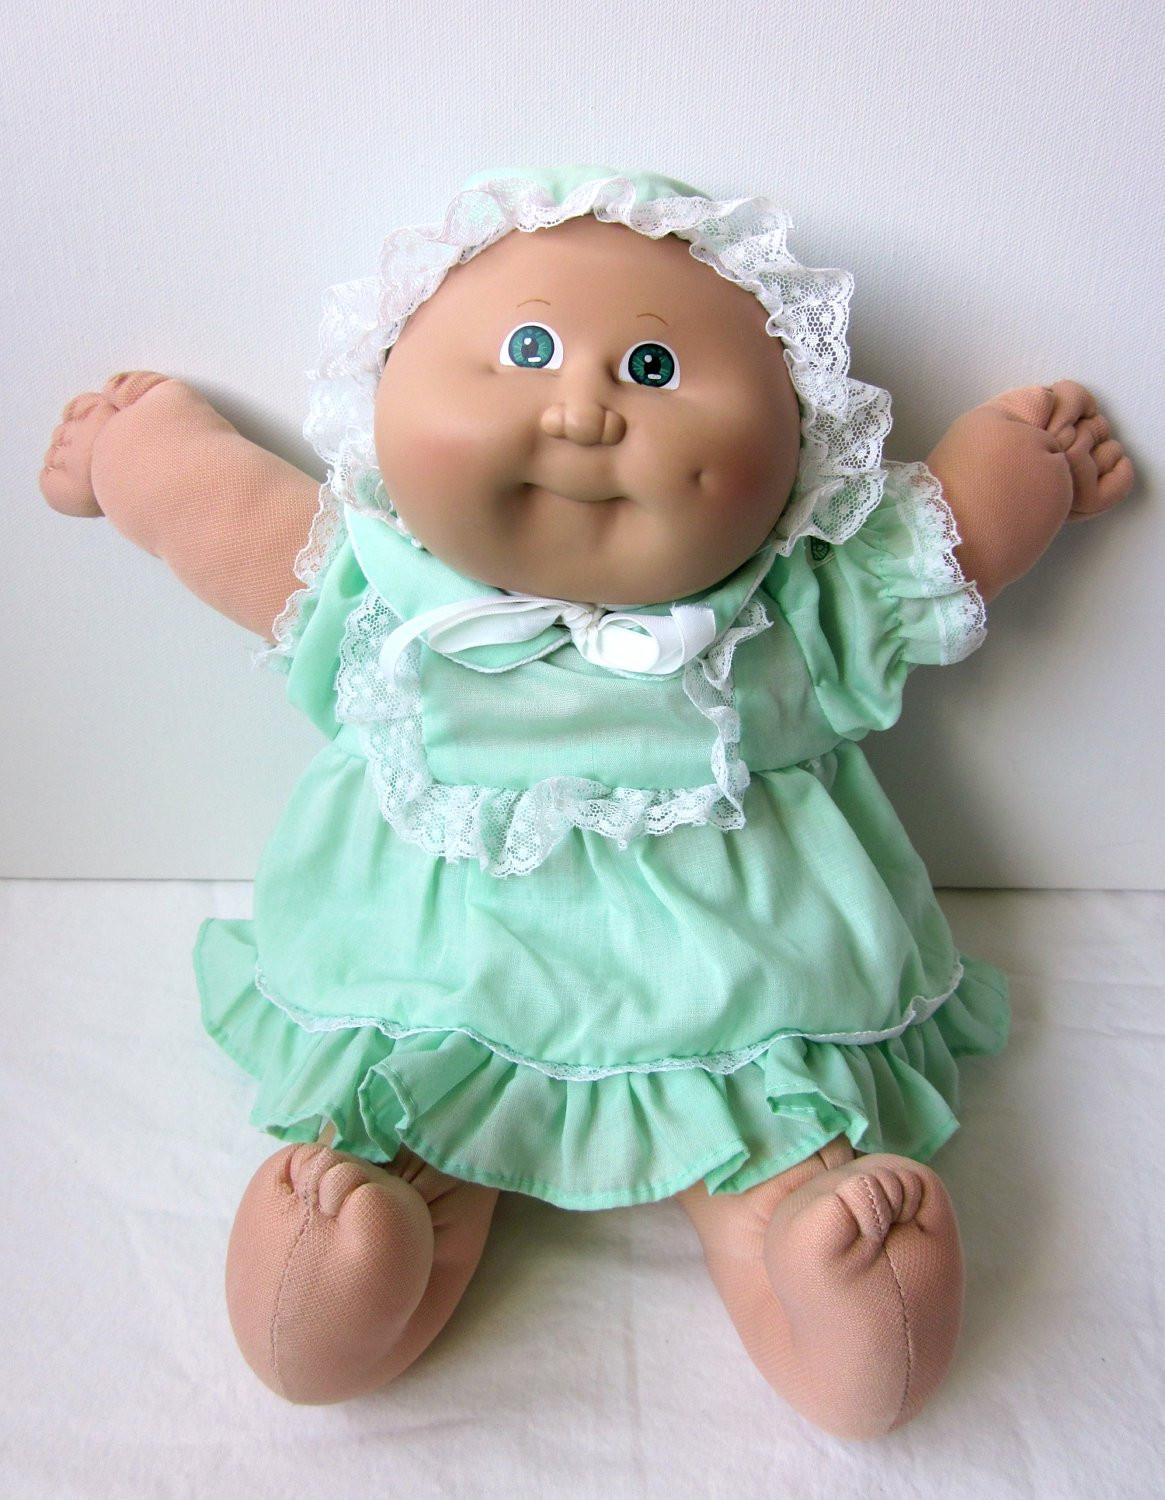 Vintage Cabbage Patch Dolls New Vintage Cabbage Patch Kid Preemie Doll Blond Green Eyes Of Vintage Cabbage Patch Dolls Fresh Cabbage Patch Kids Vintage Doll Limited Edition 30th